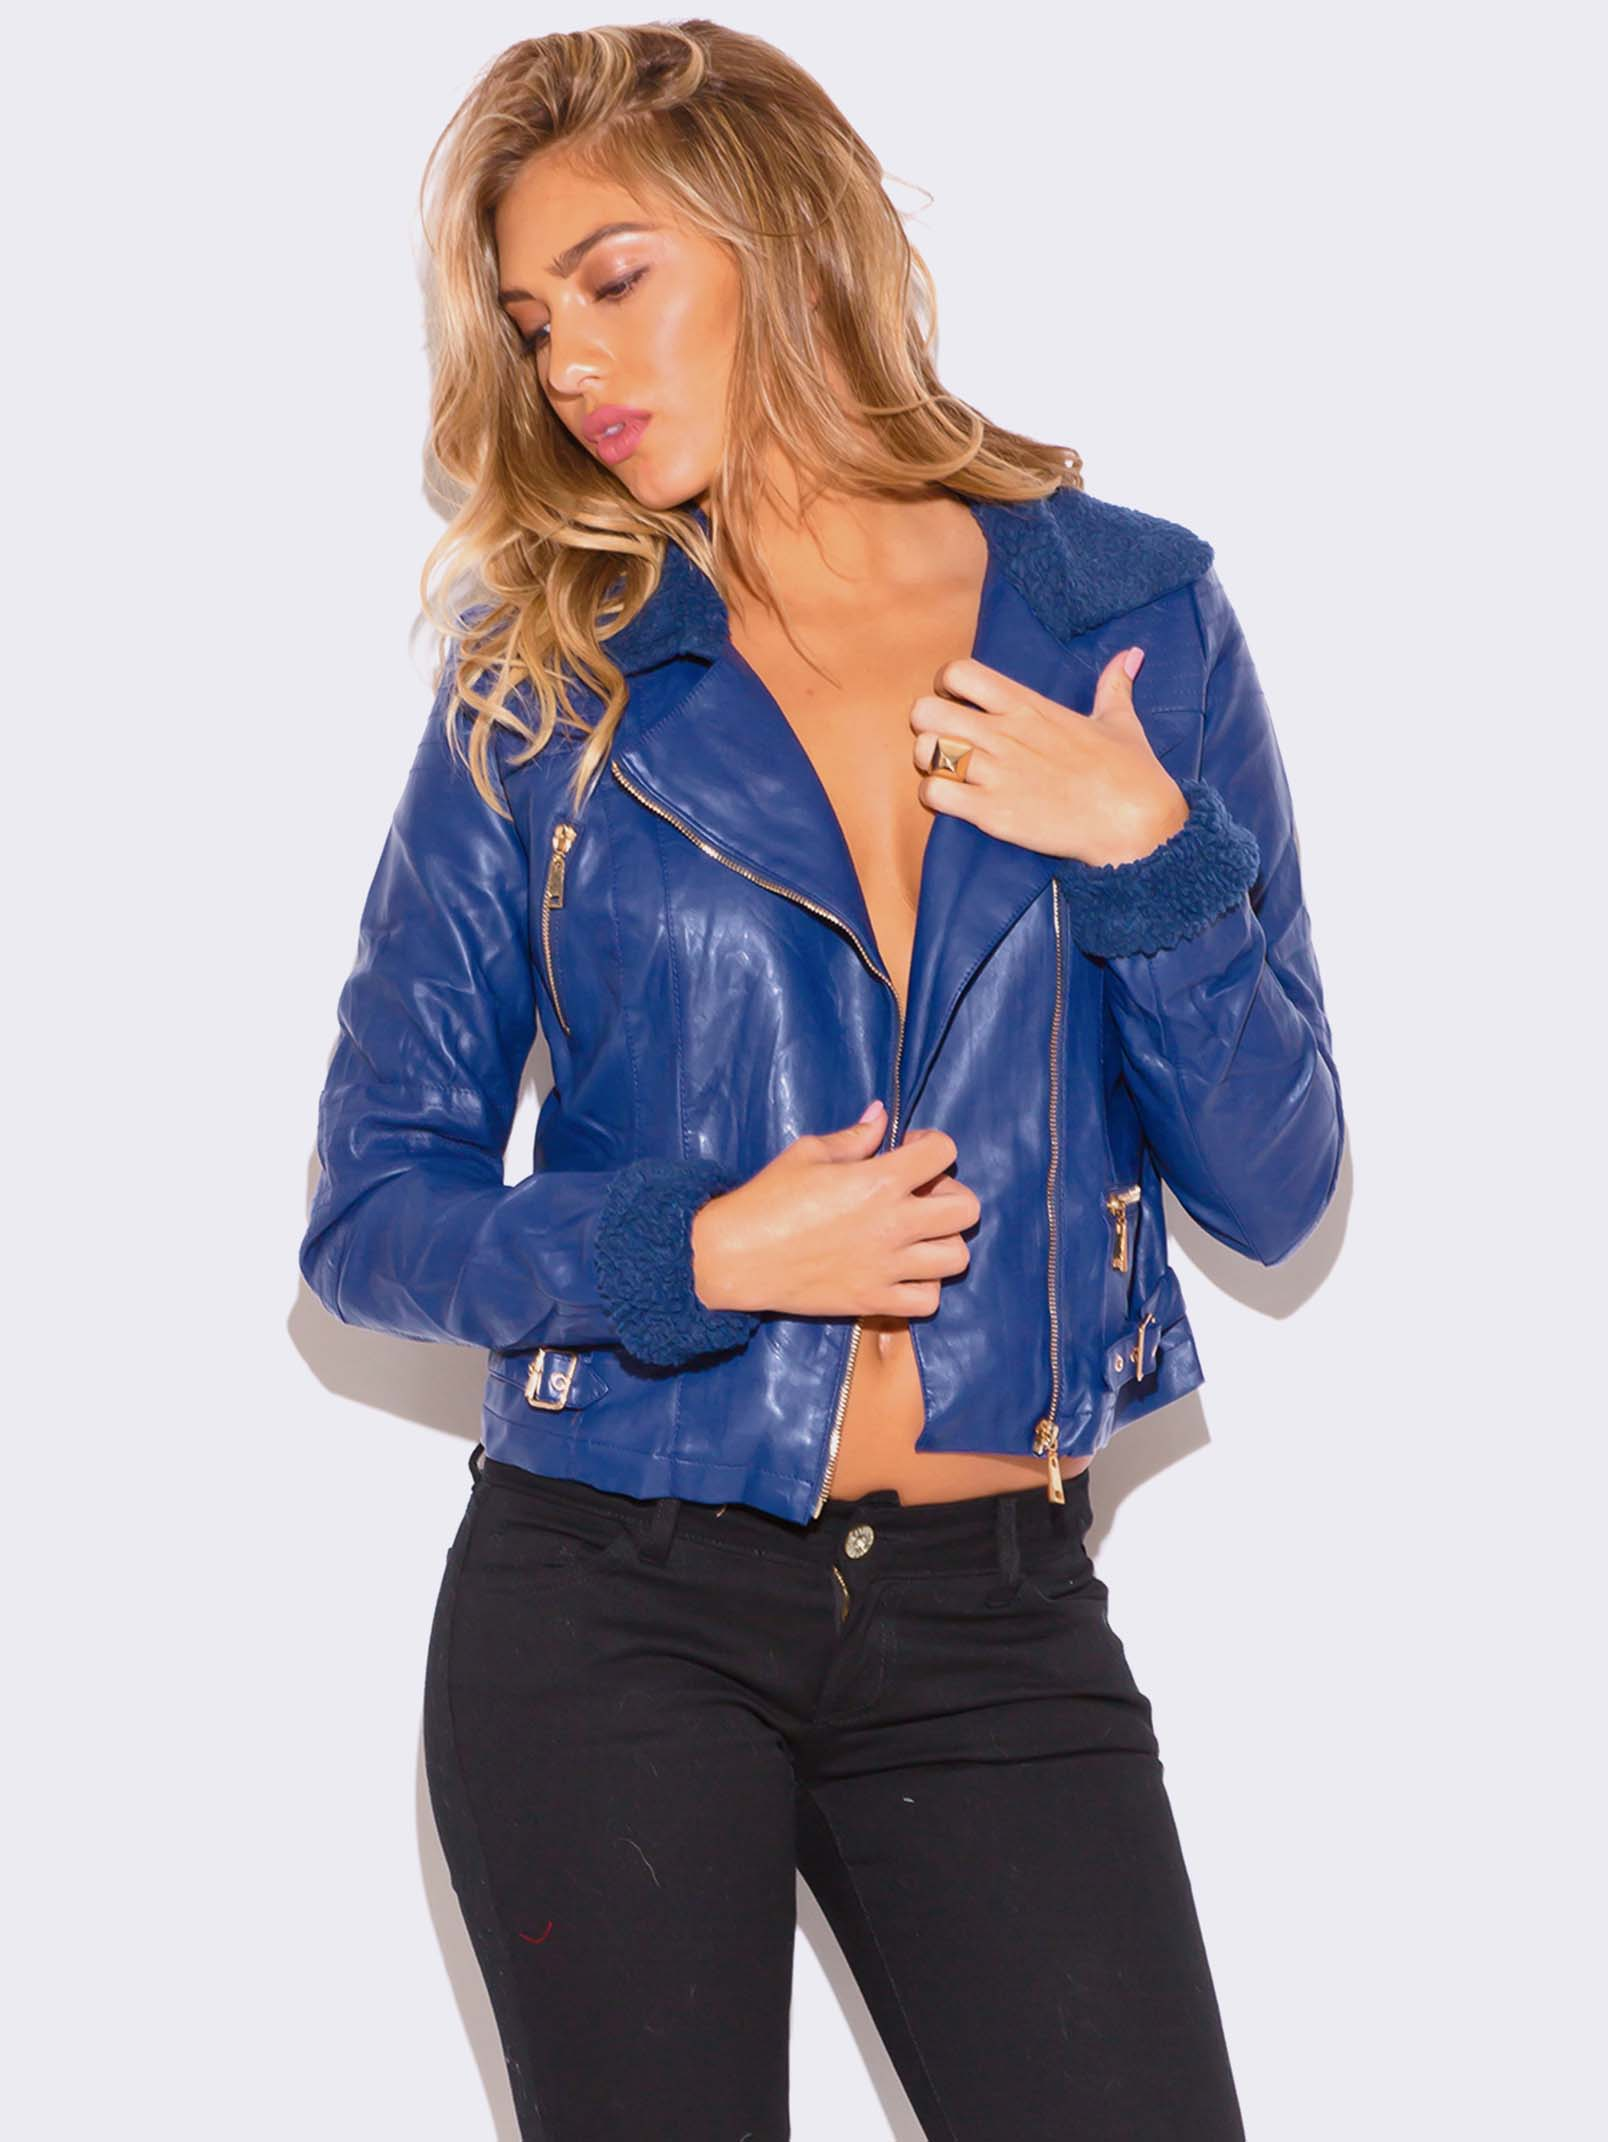 c2648fff6 VEGAN LEATHER BIKER JACKET | ModishOnline.com